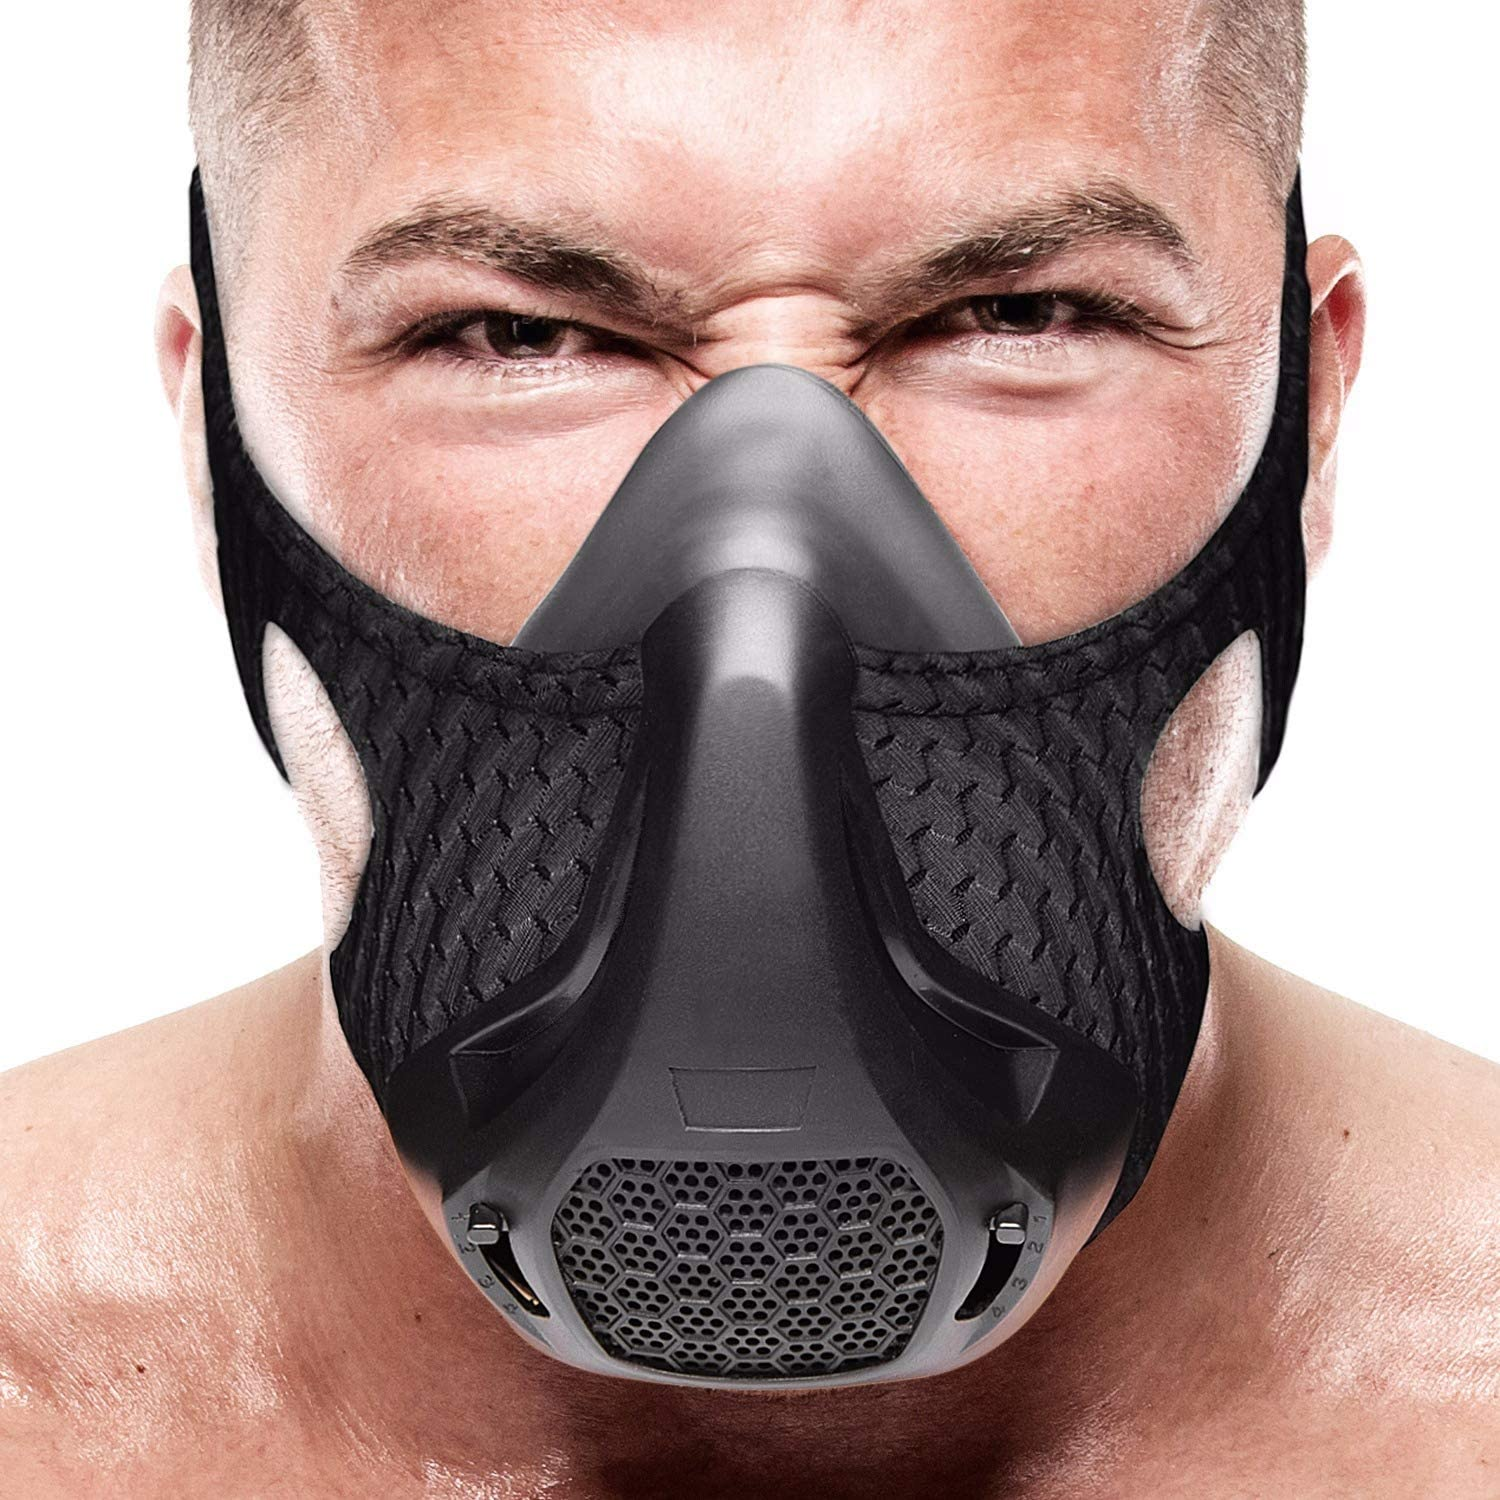 Training Mask | 24 Breathing Resistance Levels - Sport Workout Running Biking Fitness Jogging Cardio Exercise for Men Women | Imitate Workout at High Altitudes (Black) : Sports & Outdoors